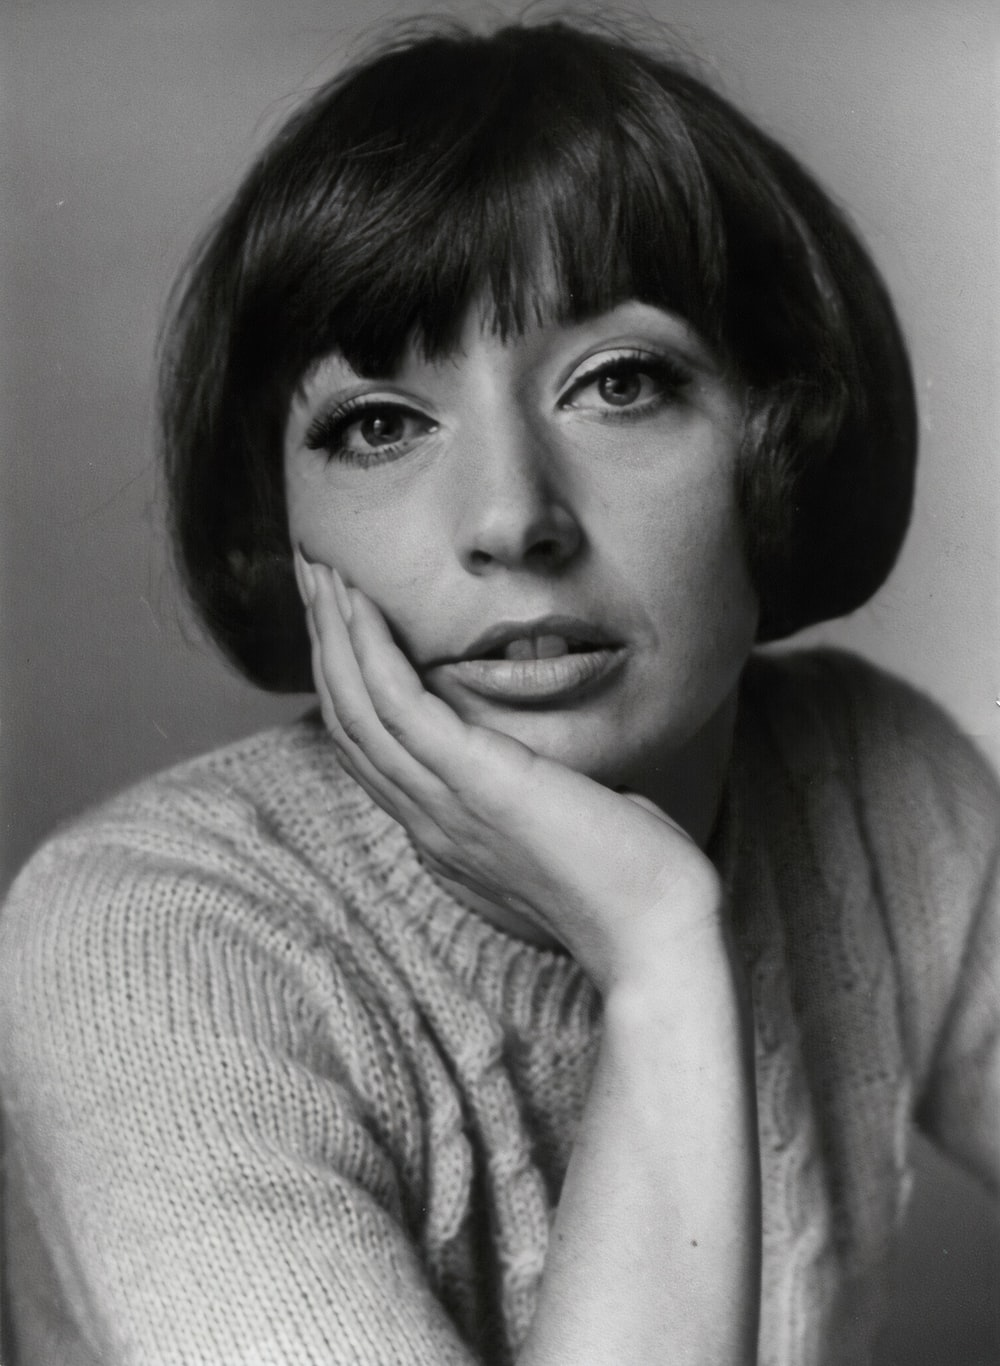 woman in sweater with hand on face